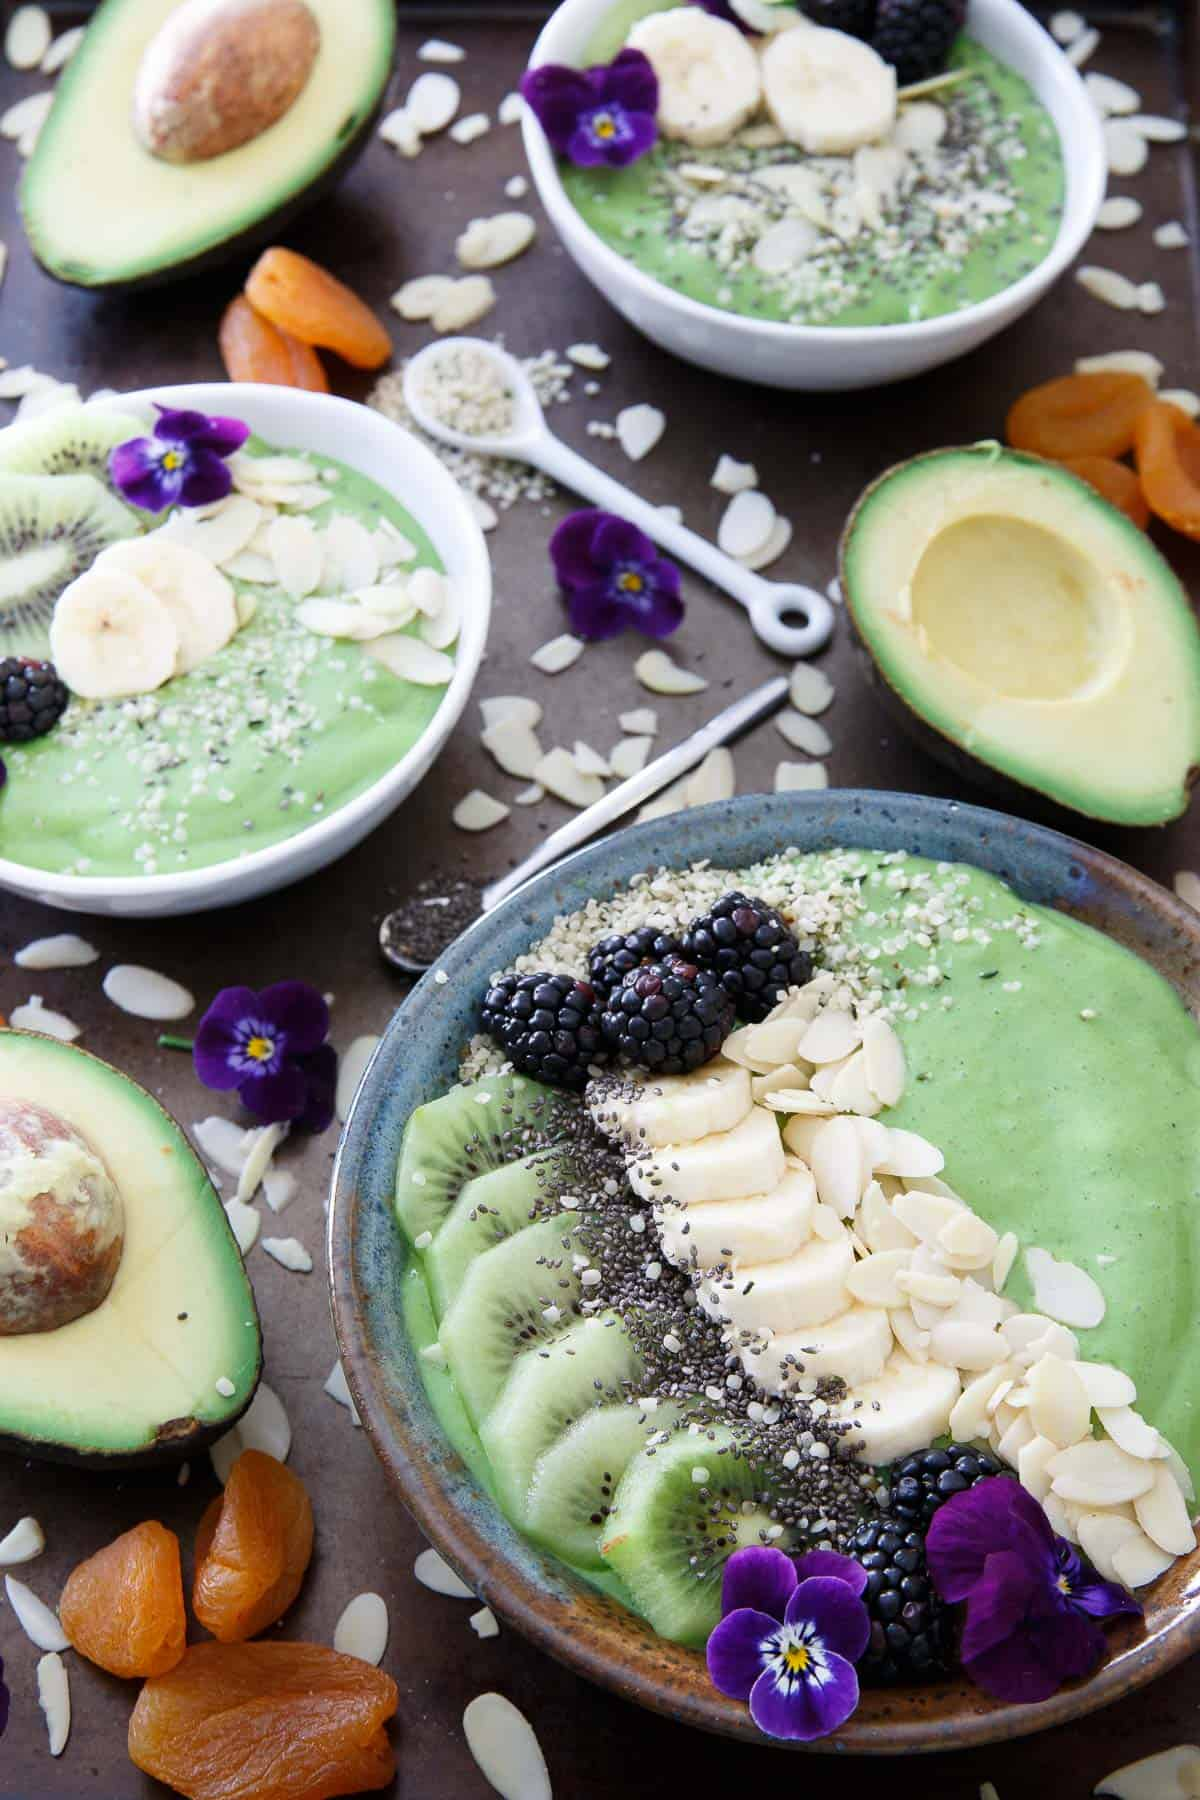 This avocado pineapple smoothie bowl is packed full of superfoods for a healthy start to the day. The topping choices are endless!